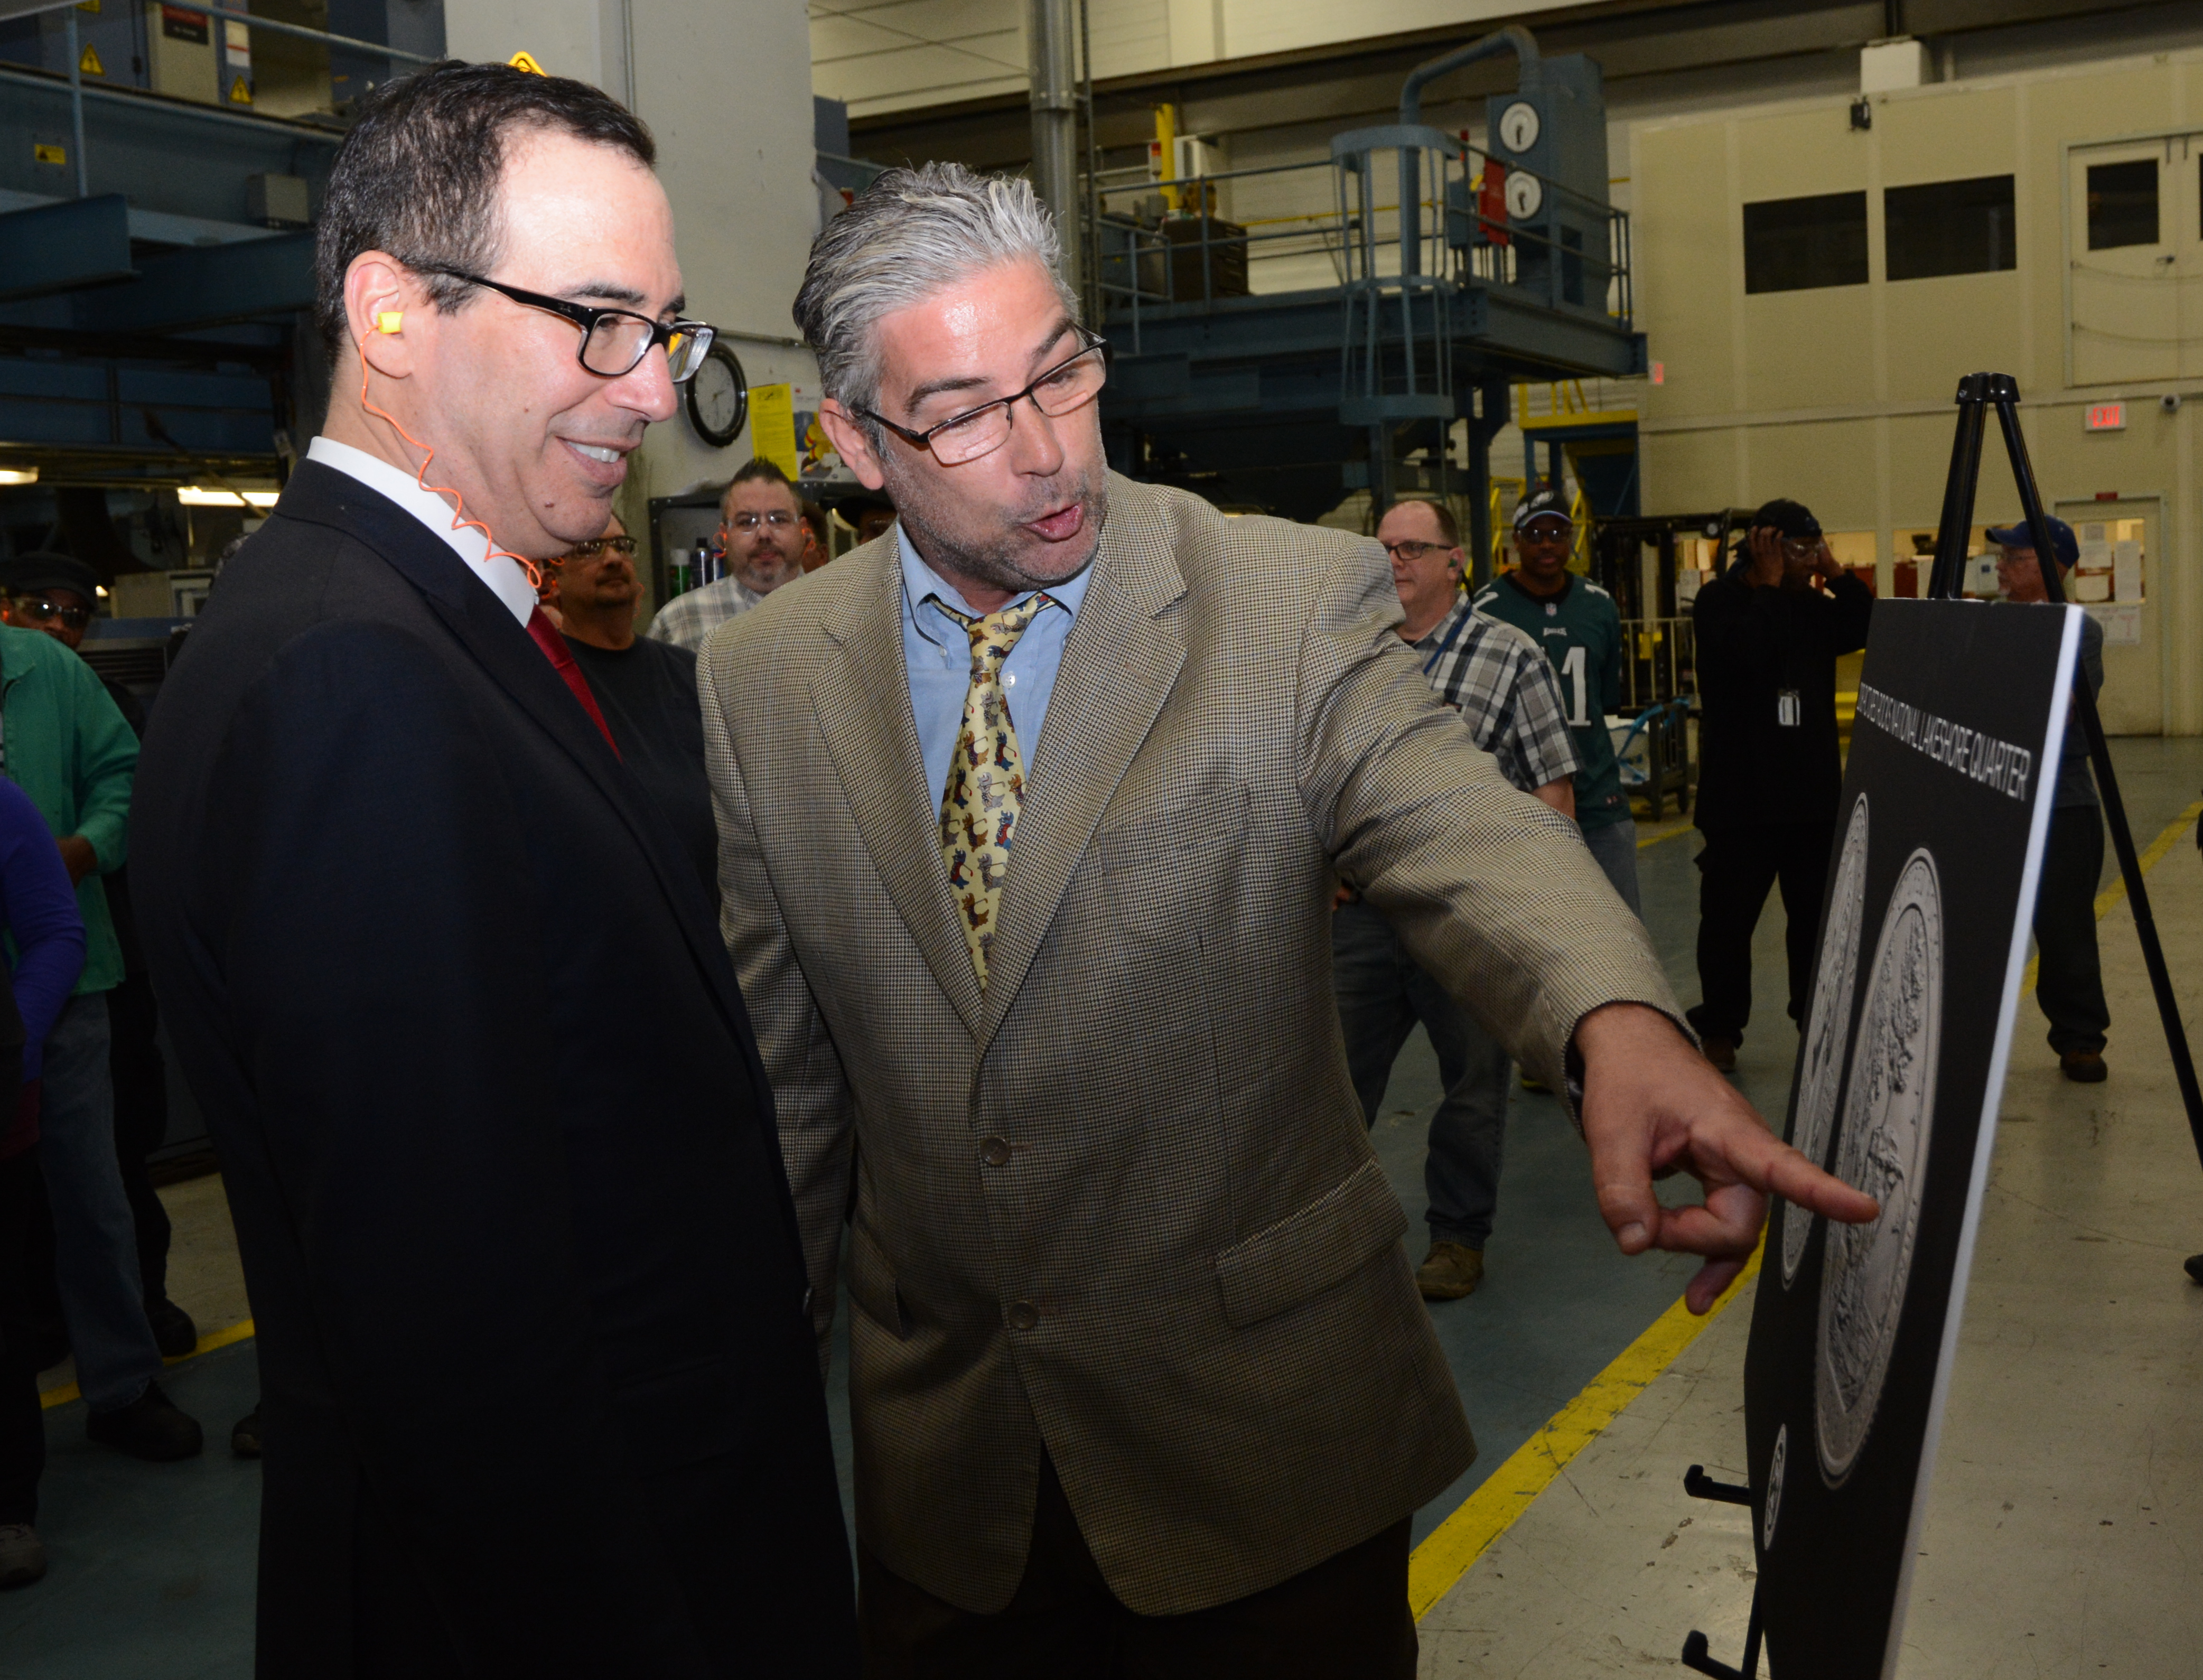 Michael Gaudioso, U.S. Mint Sculptor-Engraver of the Pictured Rocks National Lakeshore quarter, discusses his work on the coin with Treasury Secretary Steven Mnuchin during a tour of the circulating production area at the U.S. Mint facility in Philadelphi